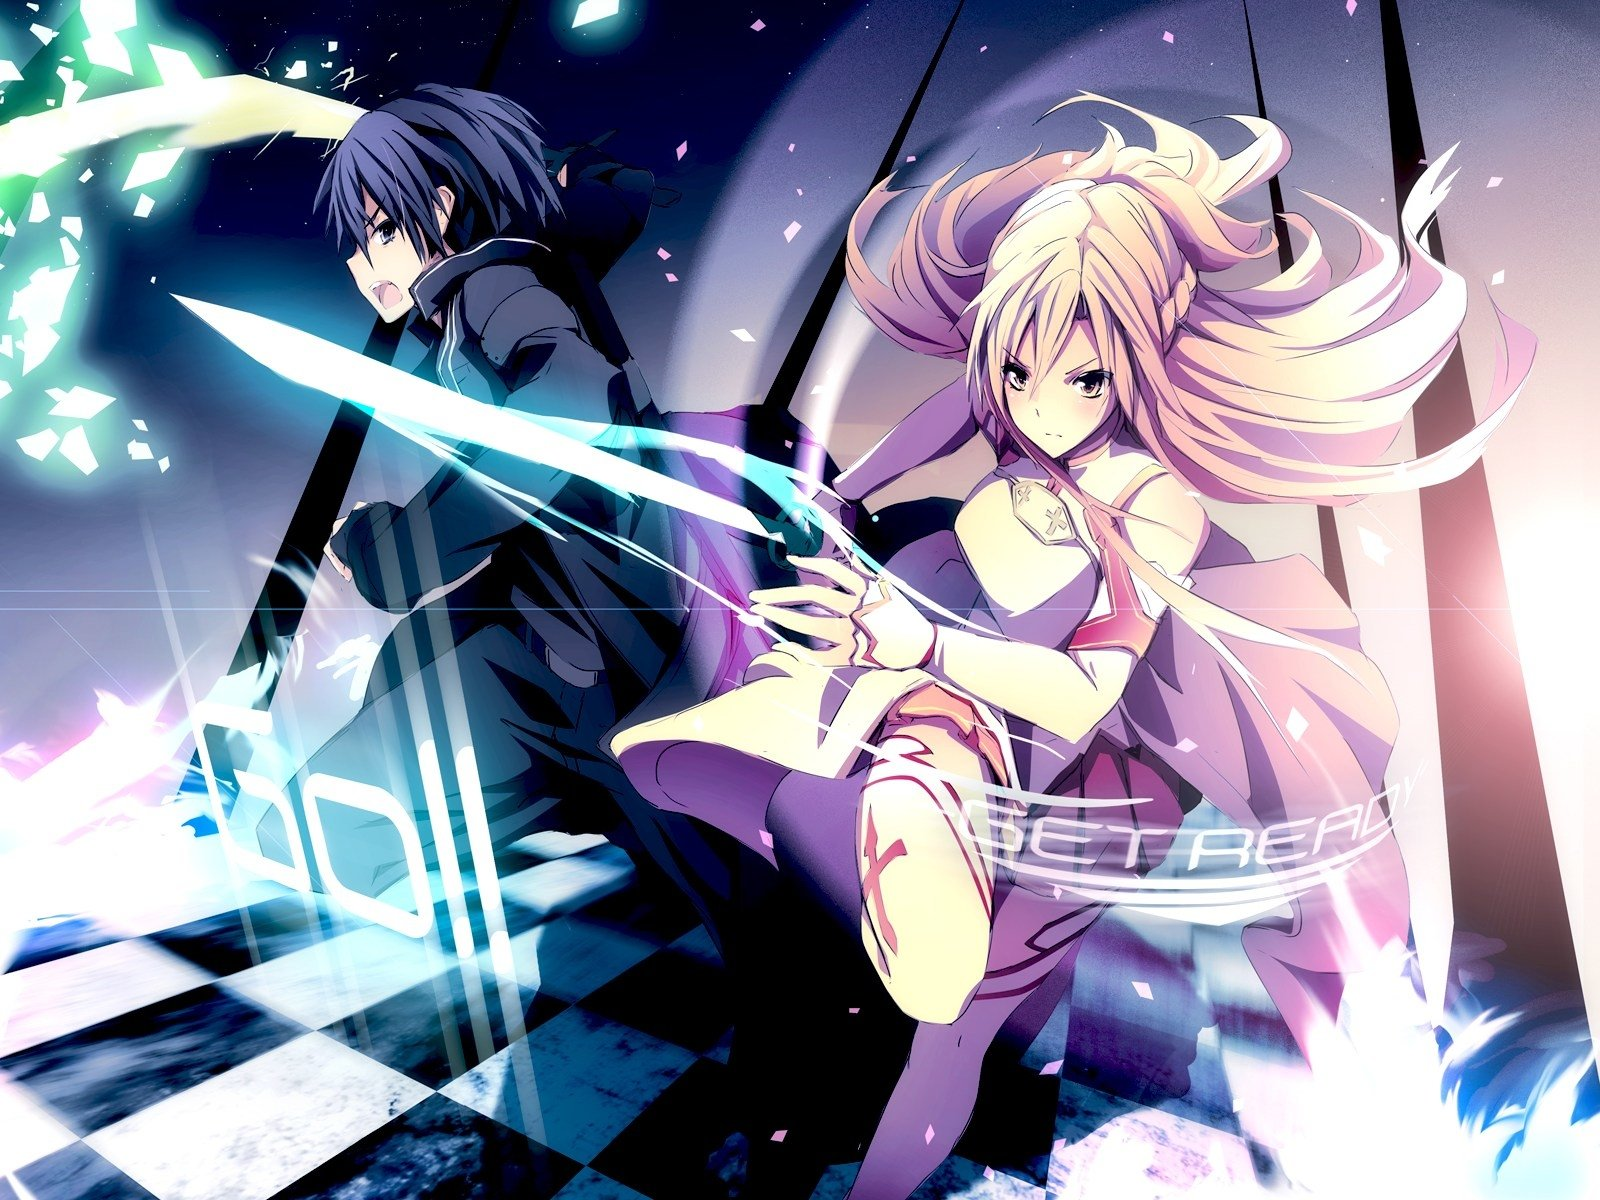 Foto Kirito Dan Asuna 2460 sword art online hd wallpapers | background images